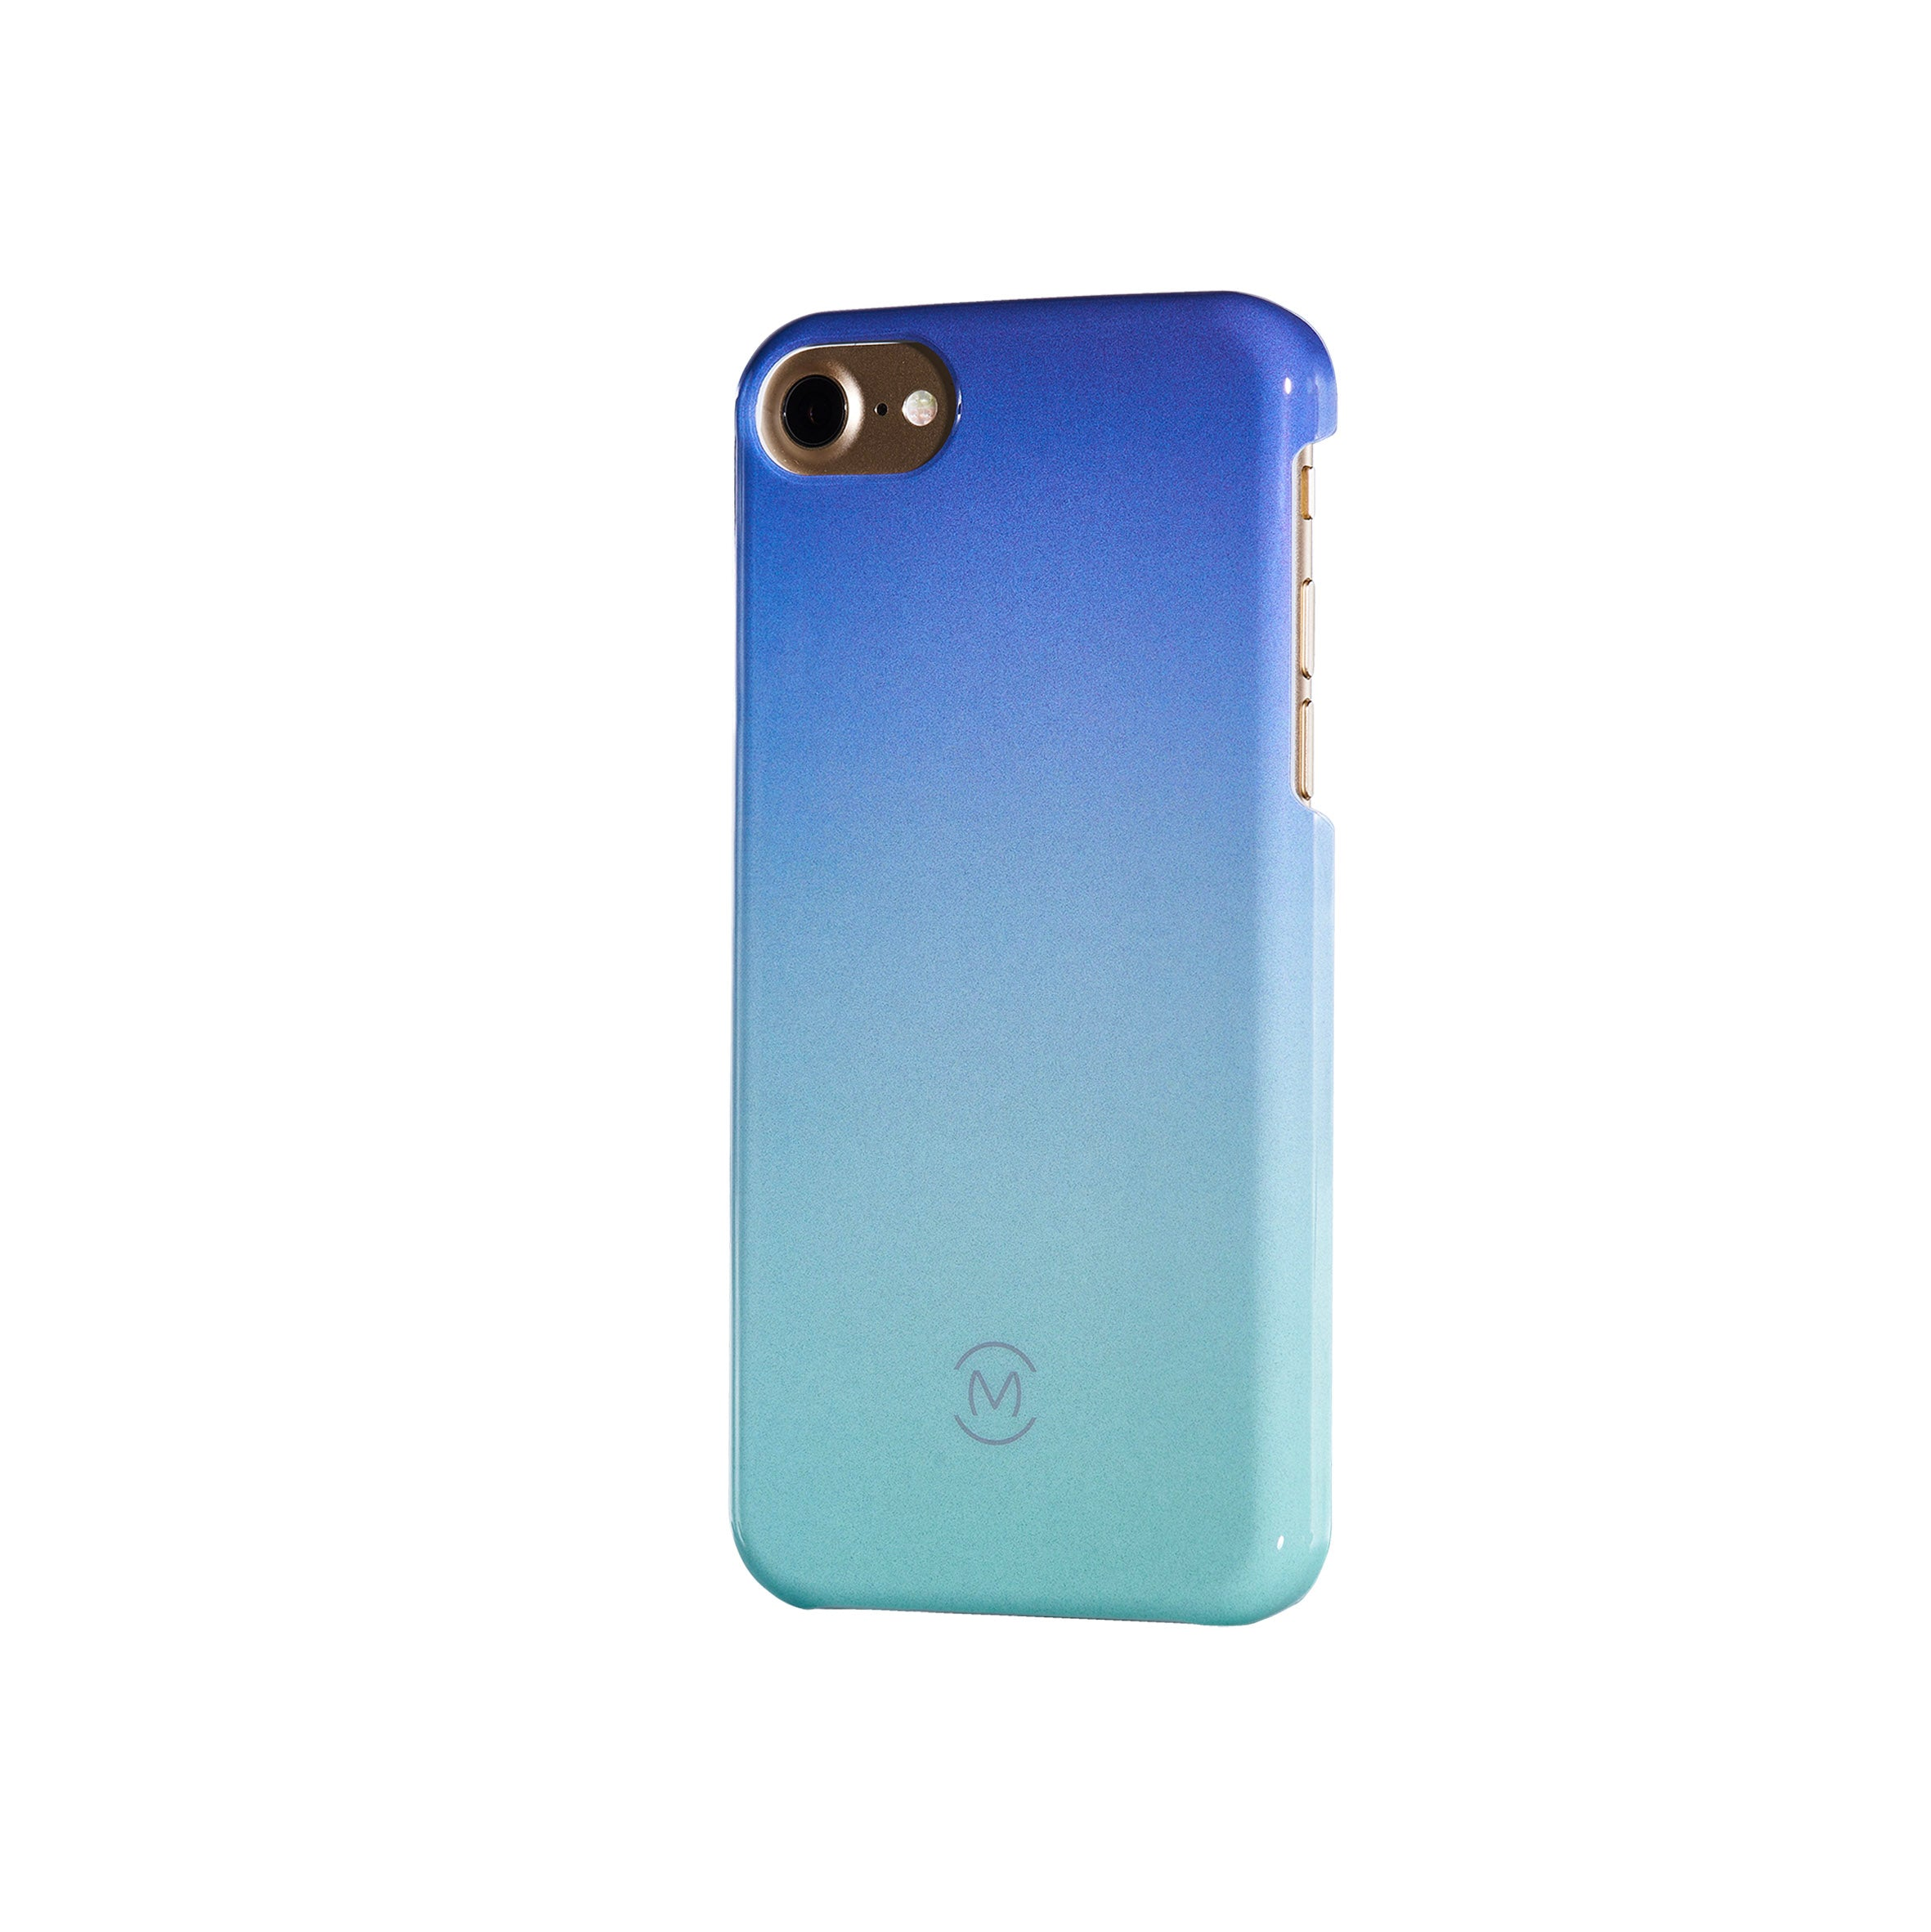 Blue-Turquoise Gradient Blue Atoll Recyclable Phone Case by Movement for iPhone 8, iPhone 7, iPhone 6s, and iPhone 6 (Right)